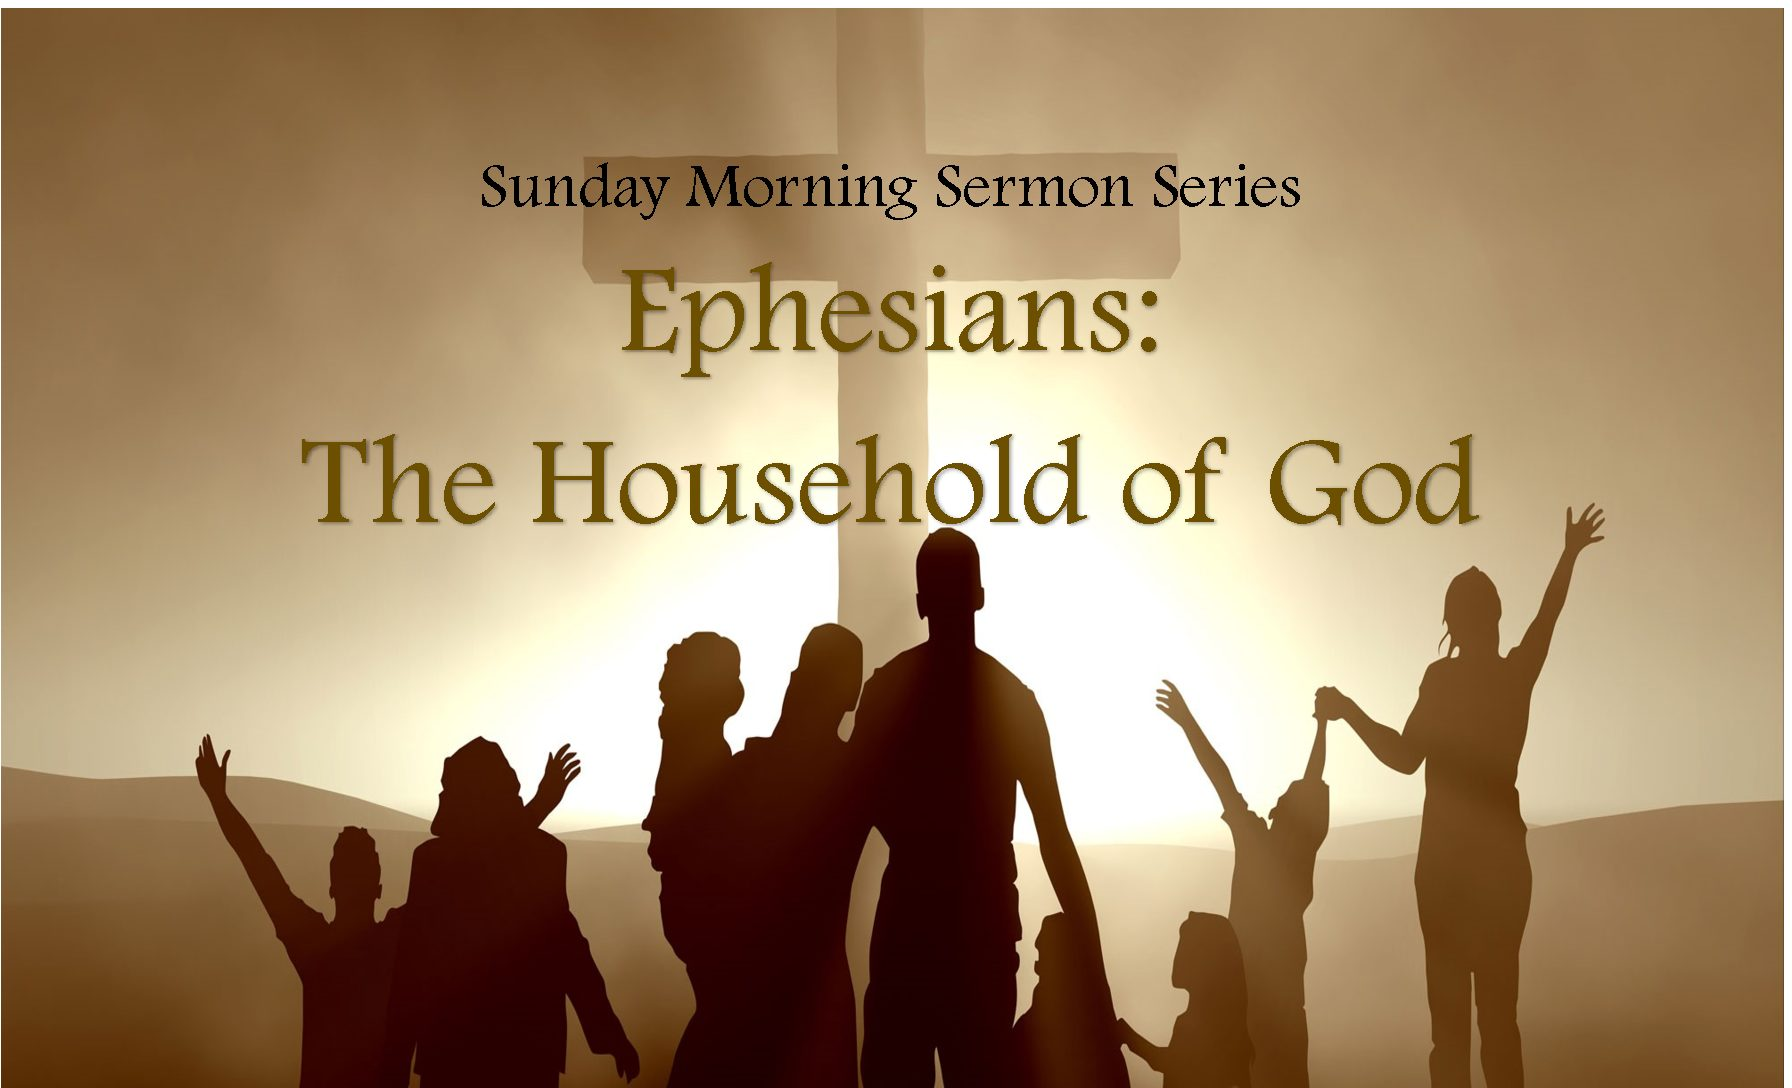 The Household of God: God's Kingdom, Family, and Temple